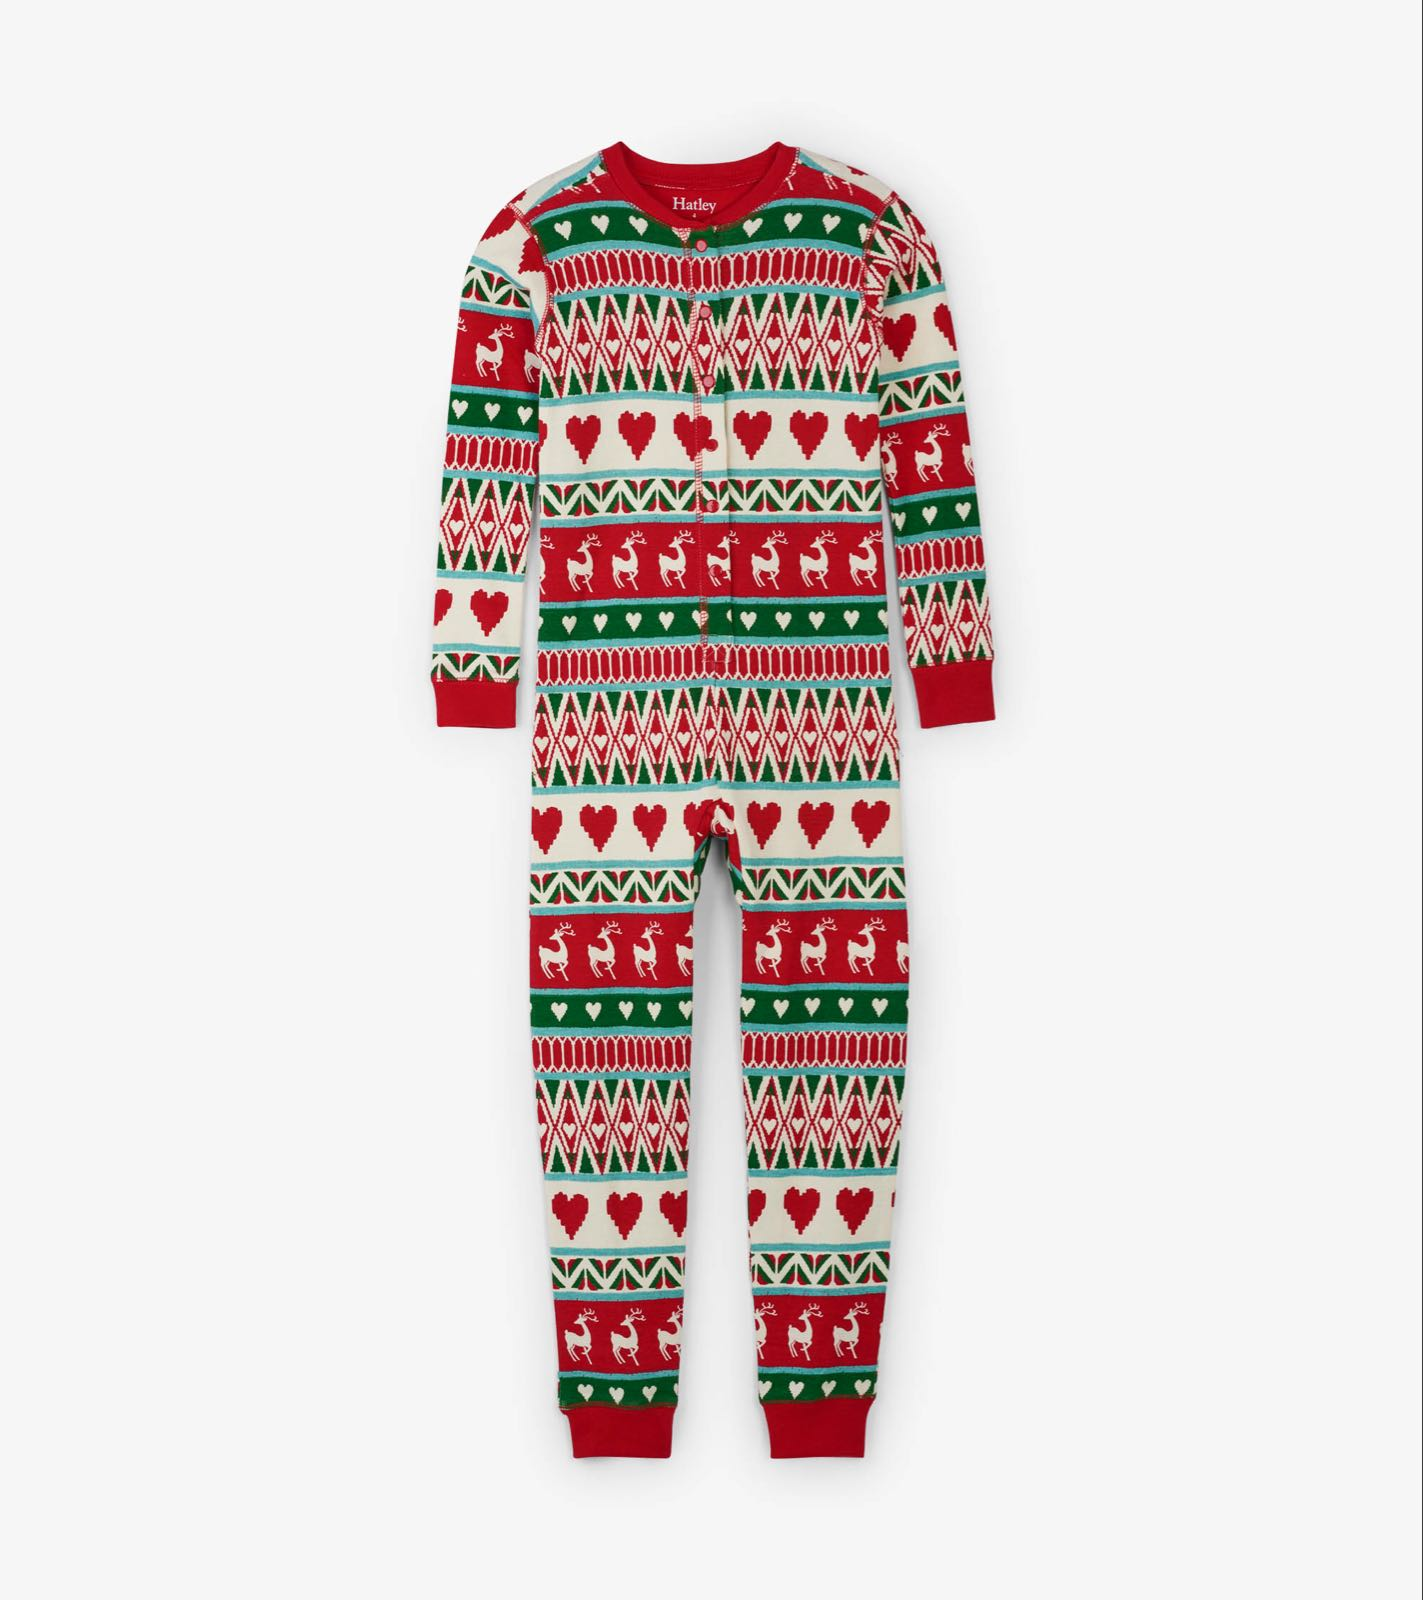 Hatley Mistletoe Deer Fair Isle Organic Cotton Onesies